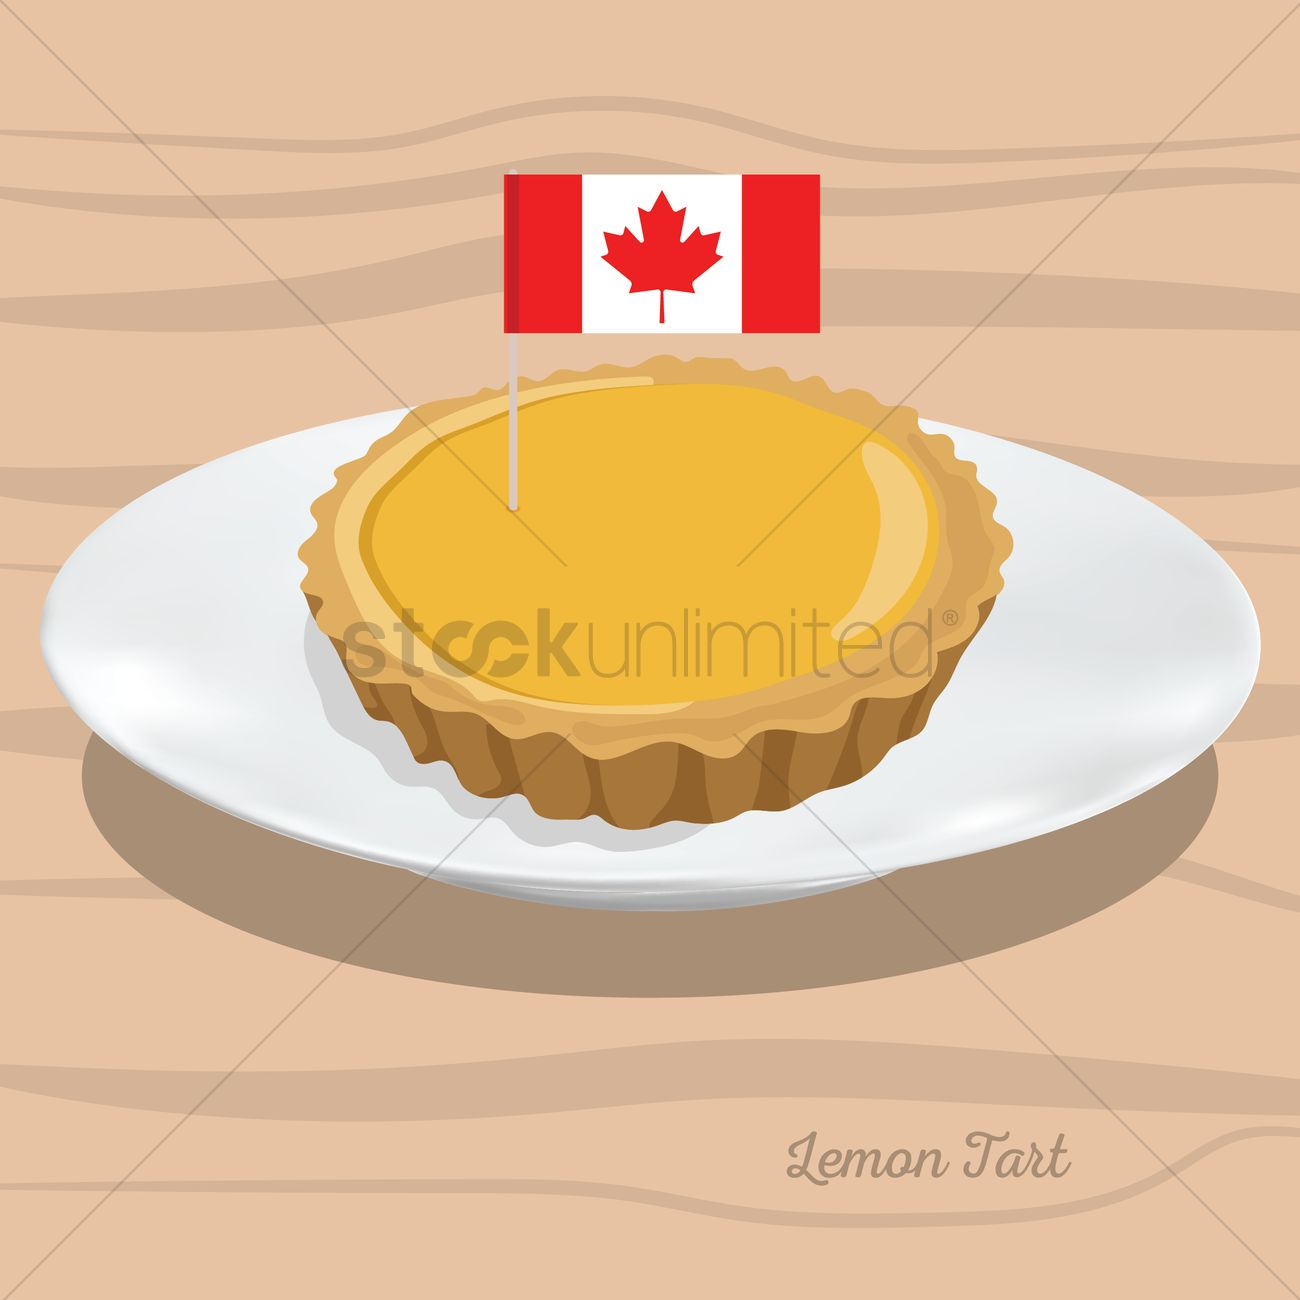 Lemon Tart Vector Image 1586955 Stockunlimited